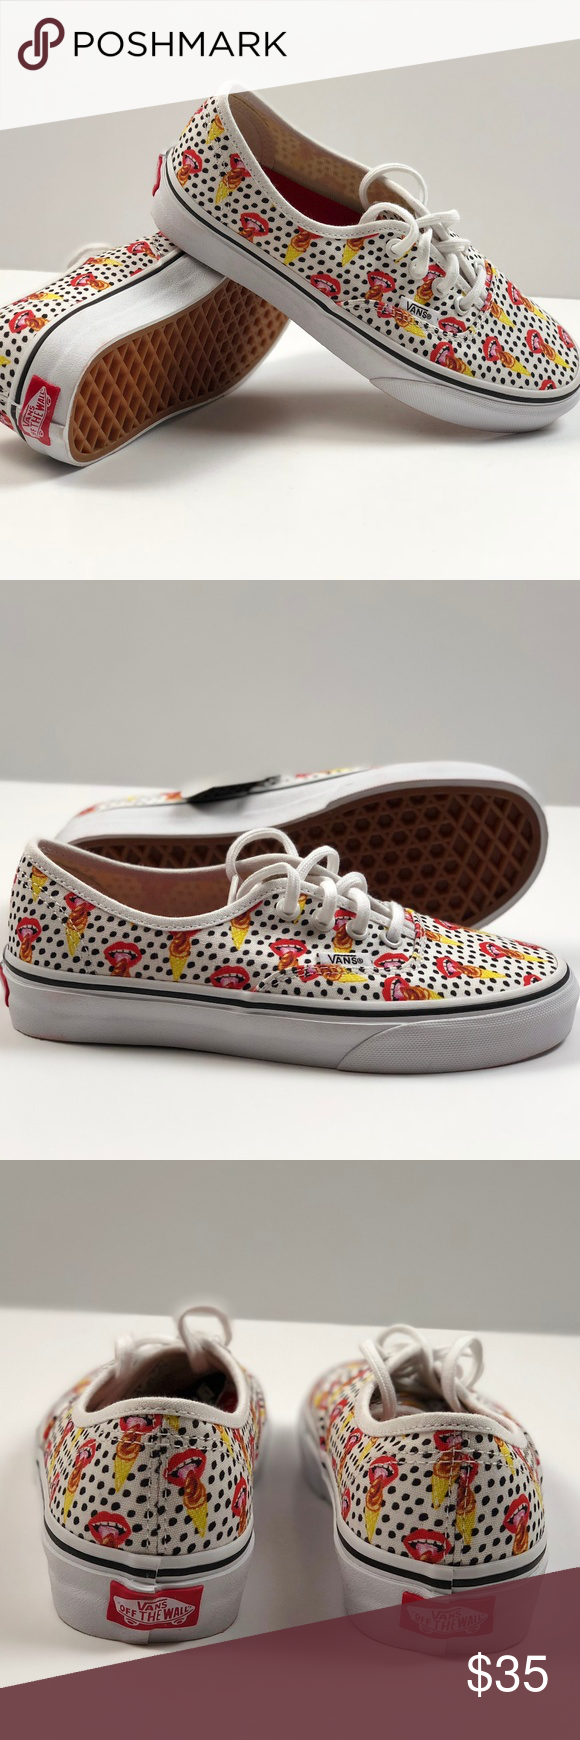 ea7648521d Vans Authentic Kendra Dandy I Scream True White. Vans Authentic Kendra Dandy  I Scream True White Ankle High Canvas Skateboarding Shoes.